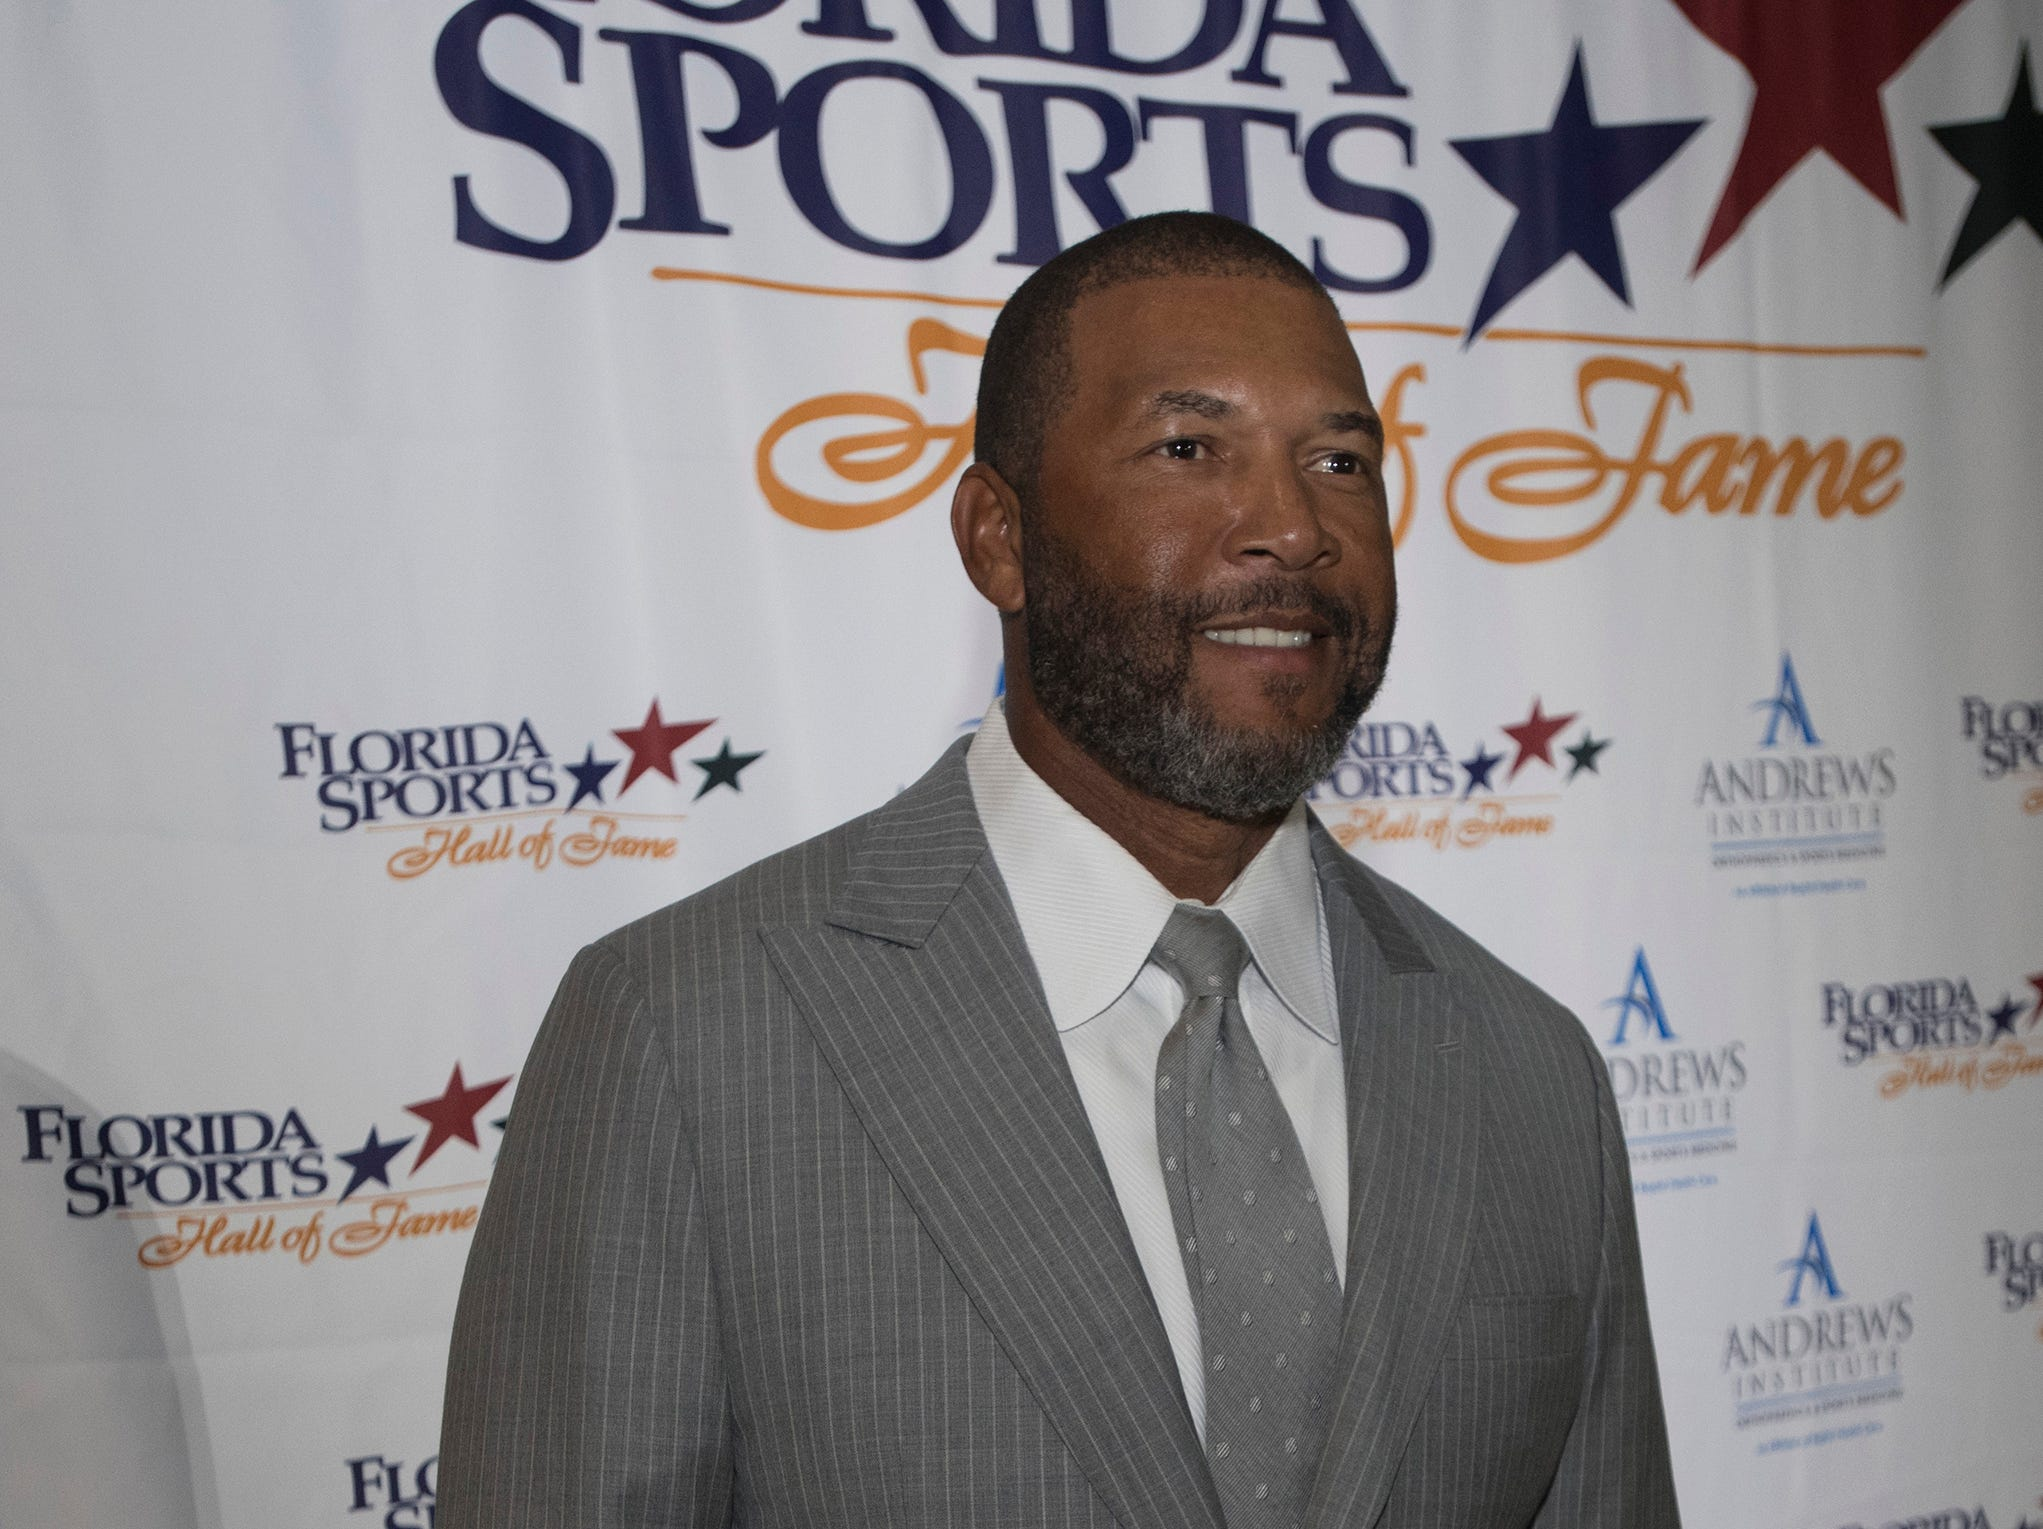 Gary Sheffield pose for photographs before the start of Wednesday night's 2018 Florida Sports Hall of Fame Enshrinement Ceremony at the National Naval Aviation Museum.